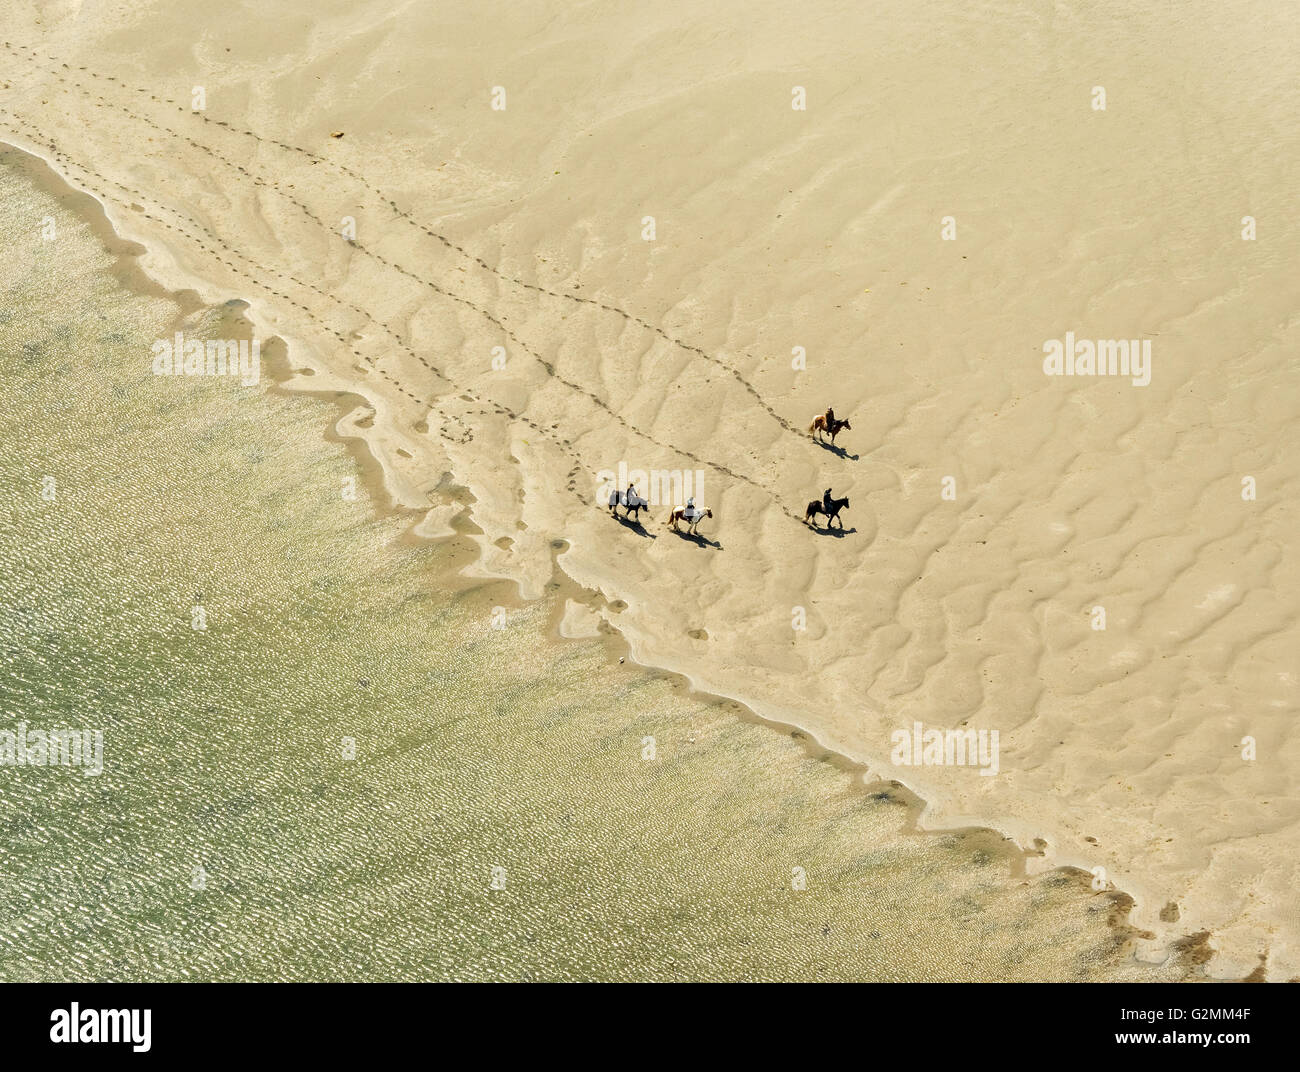 Aerial view, Galway Rusheen Bay with horse riding on the beach, Atlantic beach, sandy beach, Galway, Barna, COUNTY - Stock Image